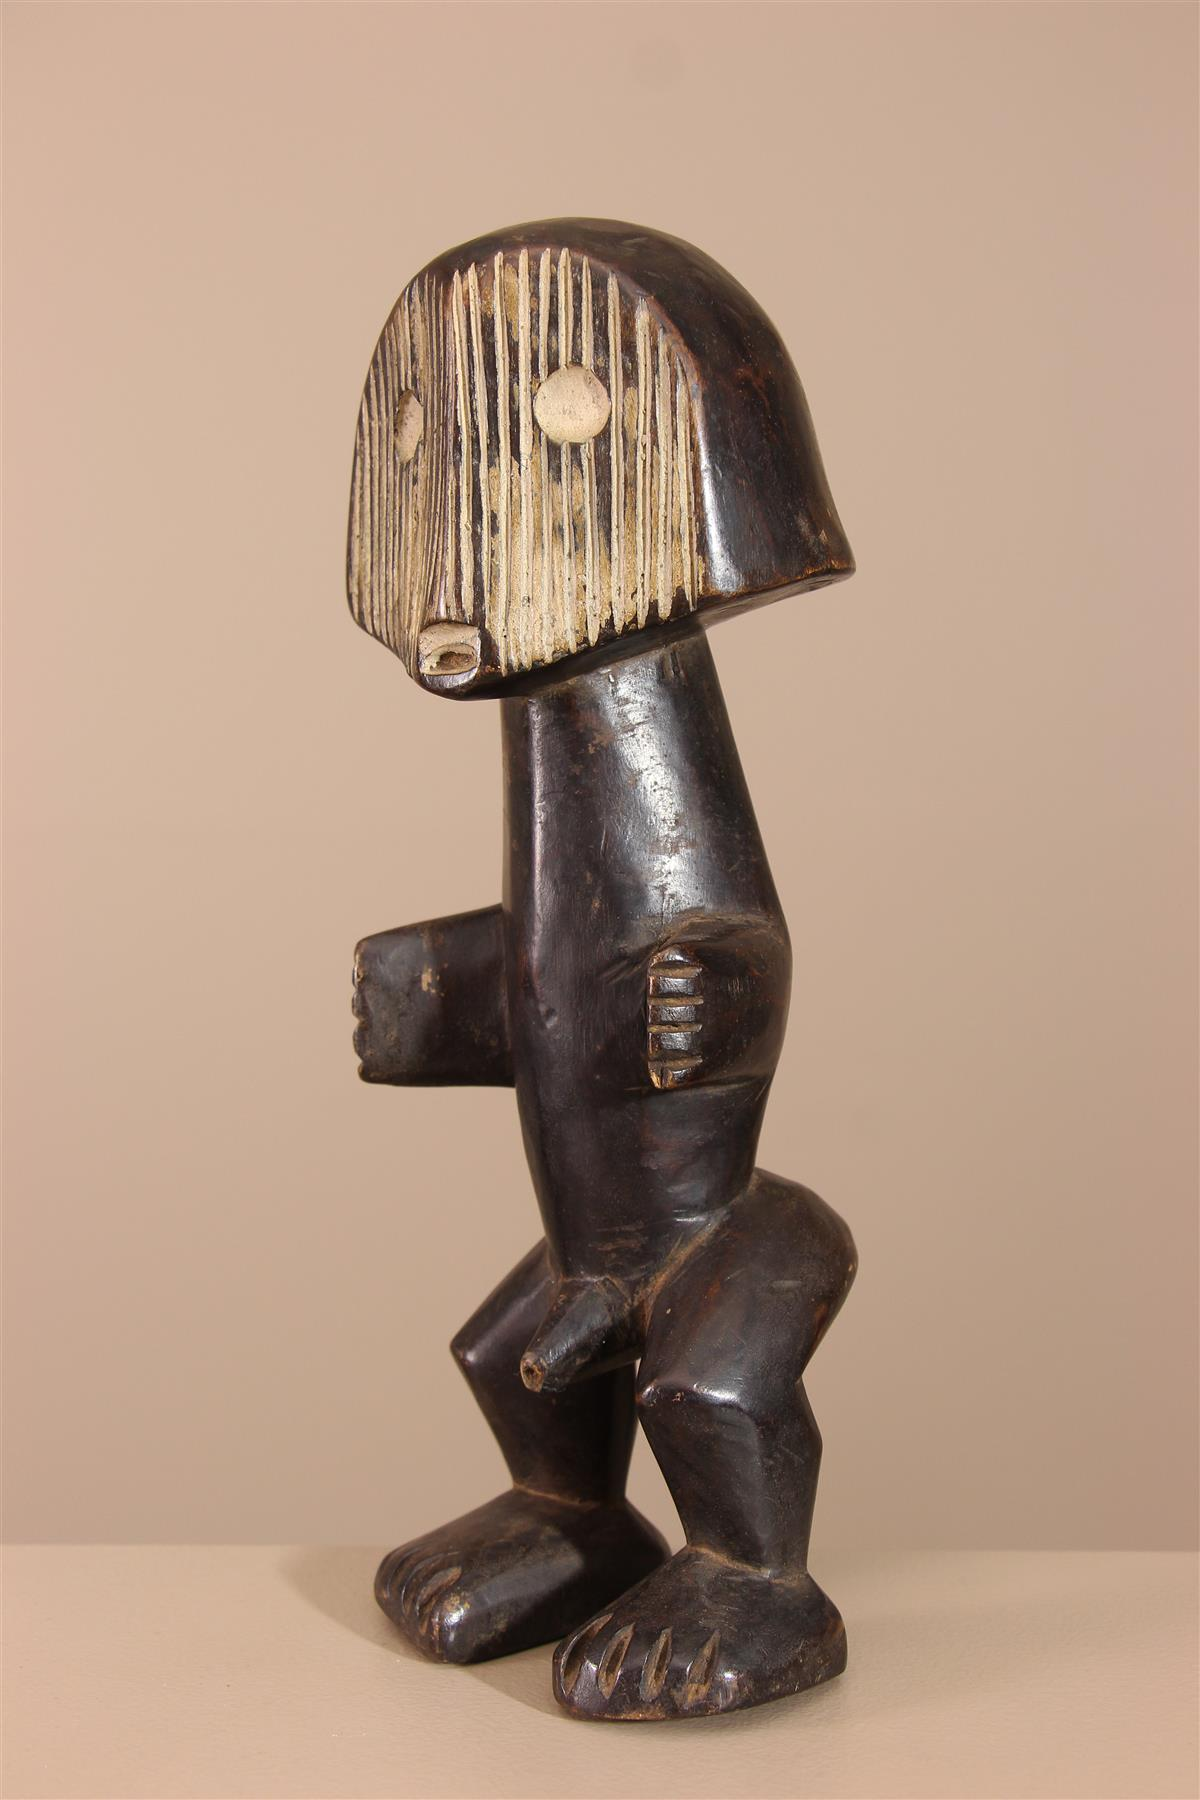 Statuette Metoko - Déco africaine - Art africain traditionnel